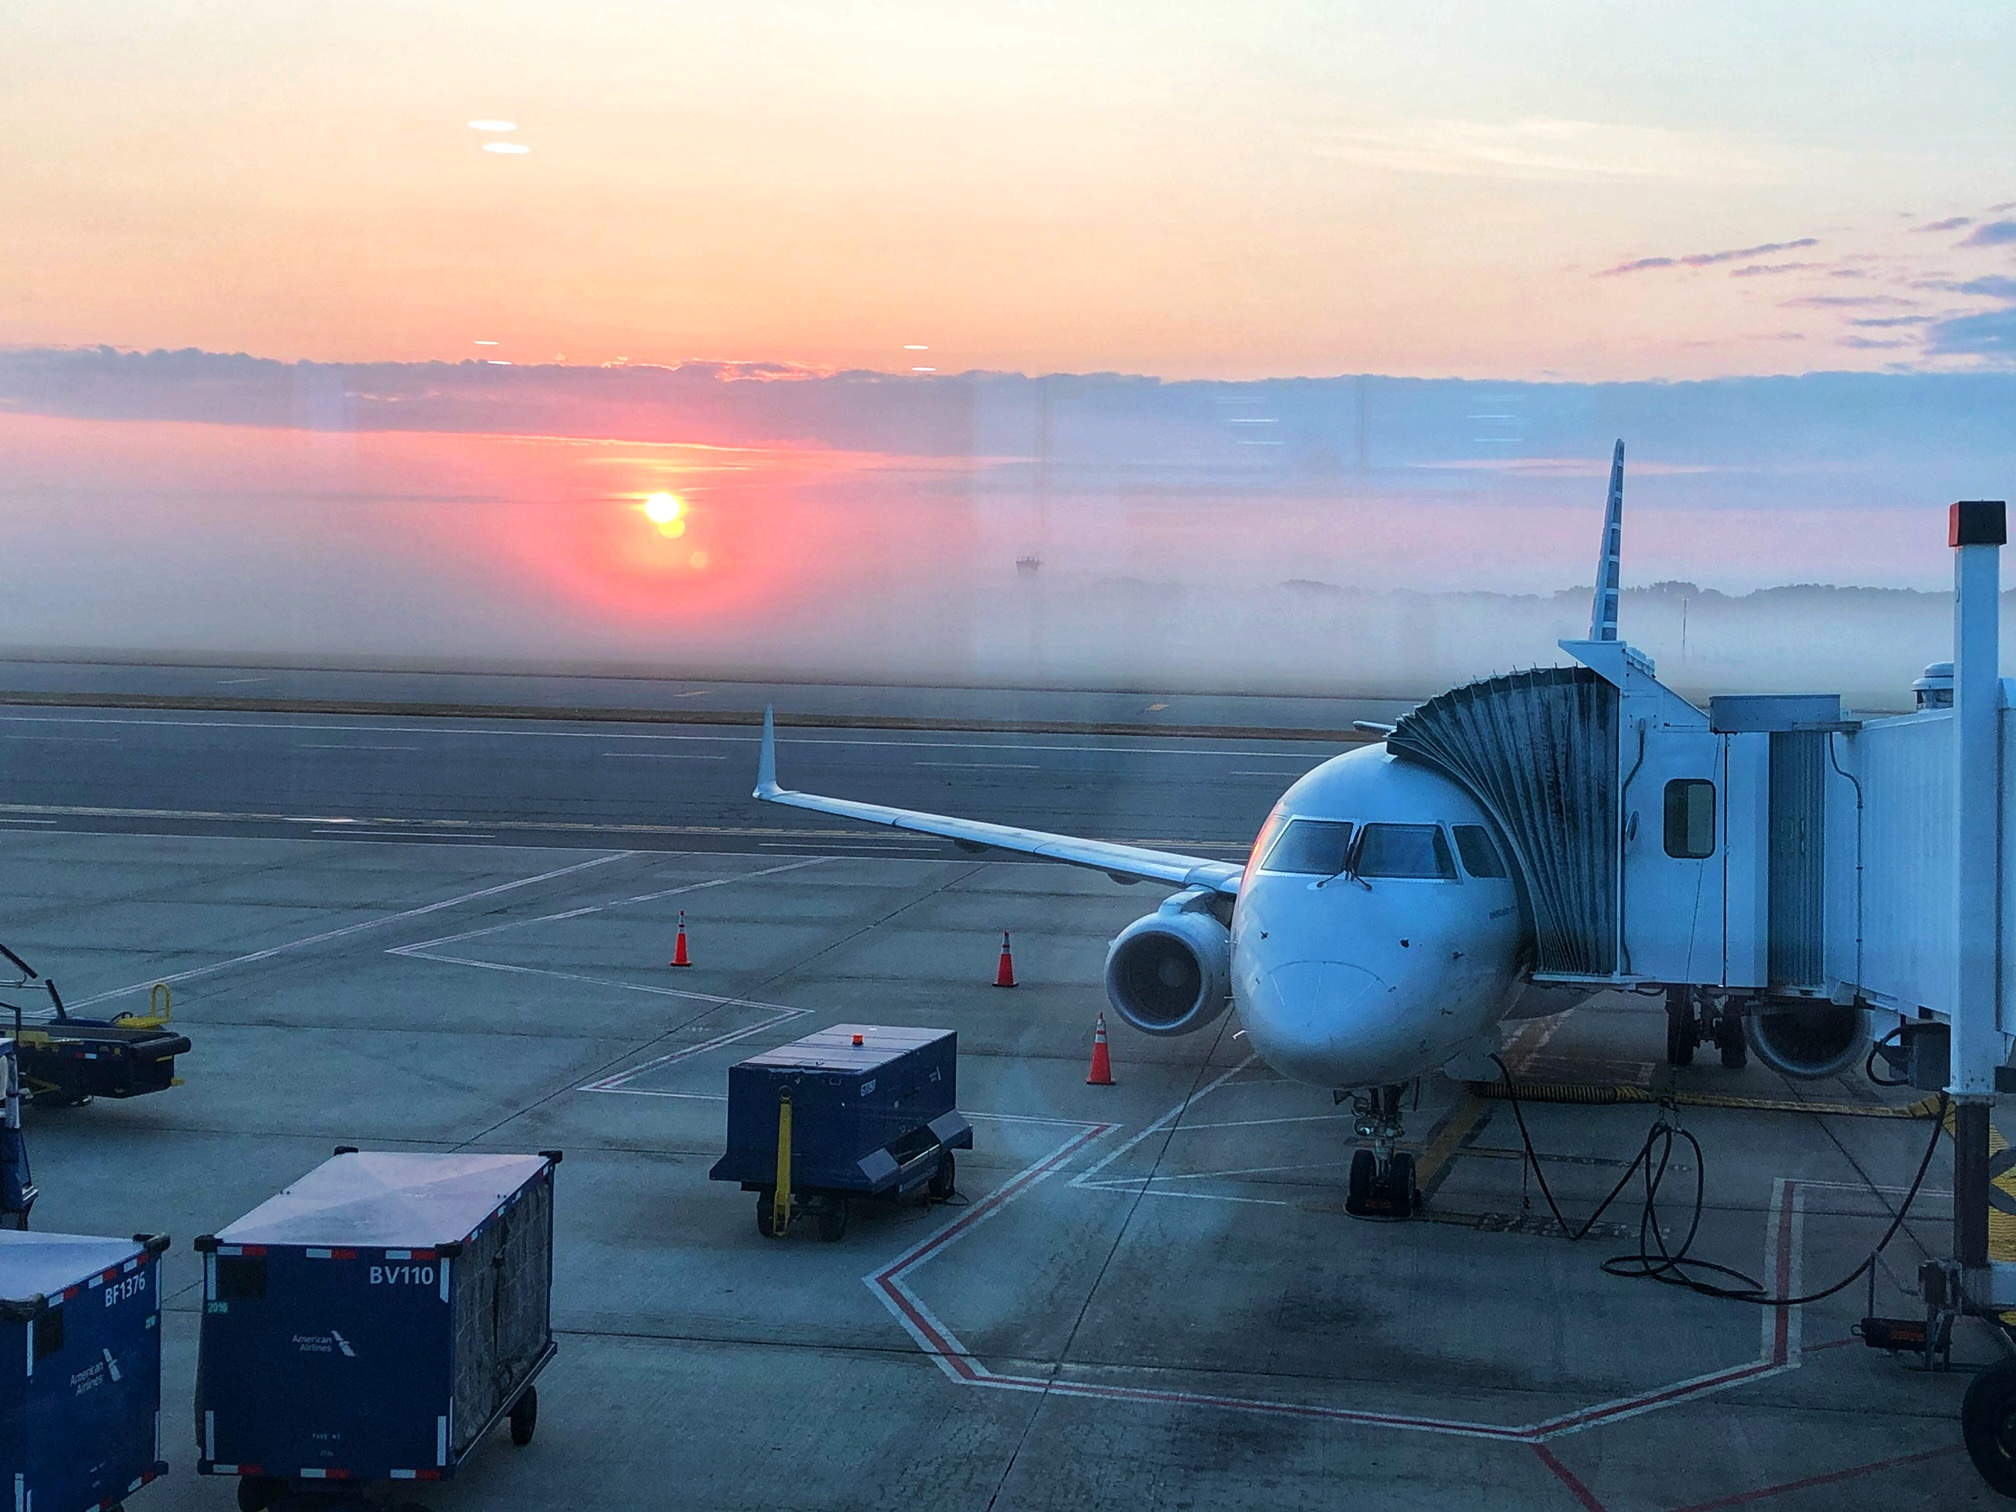 A plane on the tarmac and a stunning sunset behind